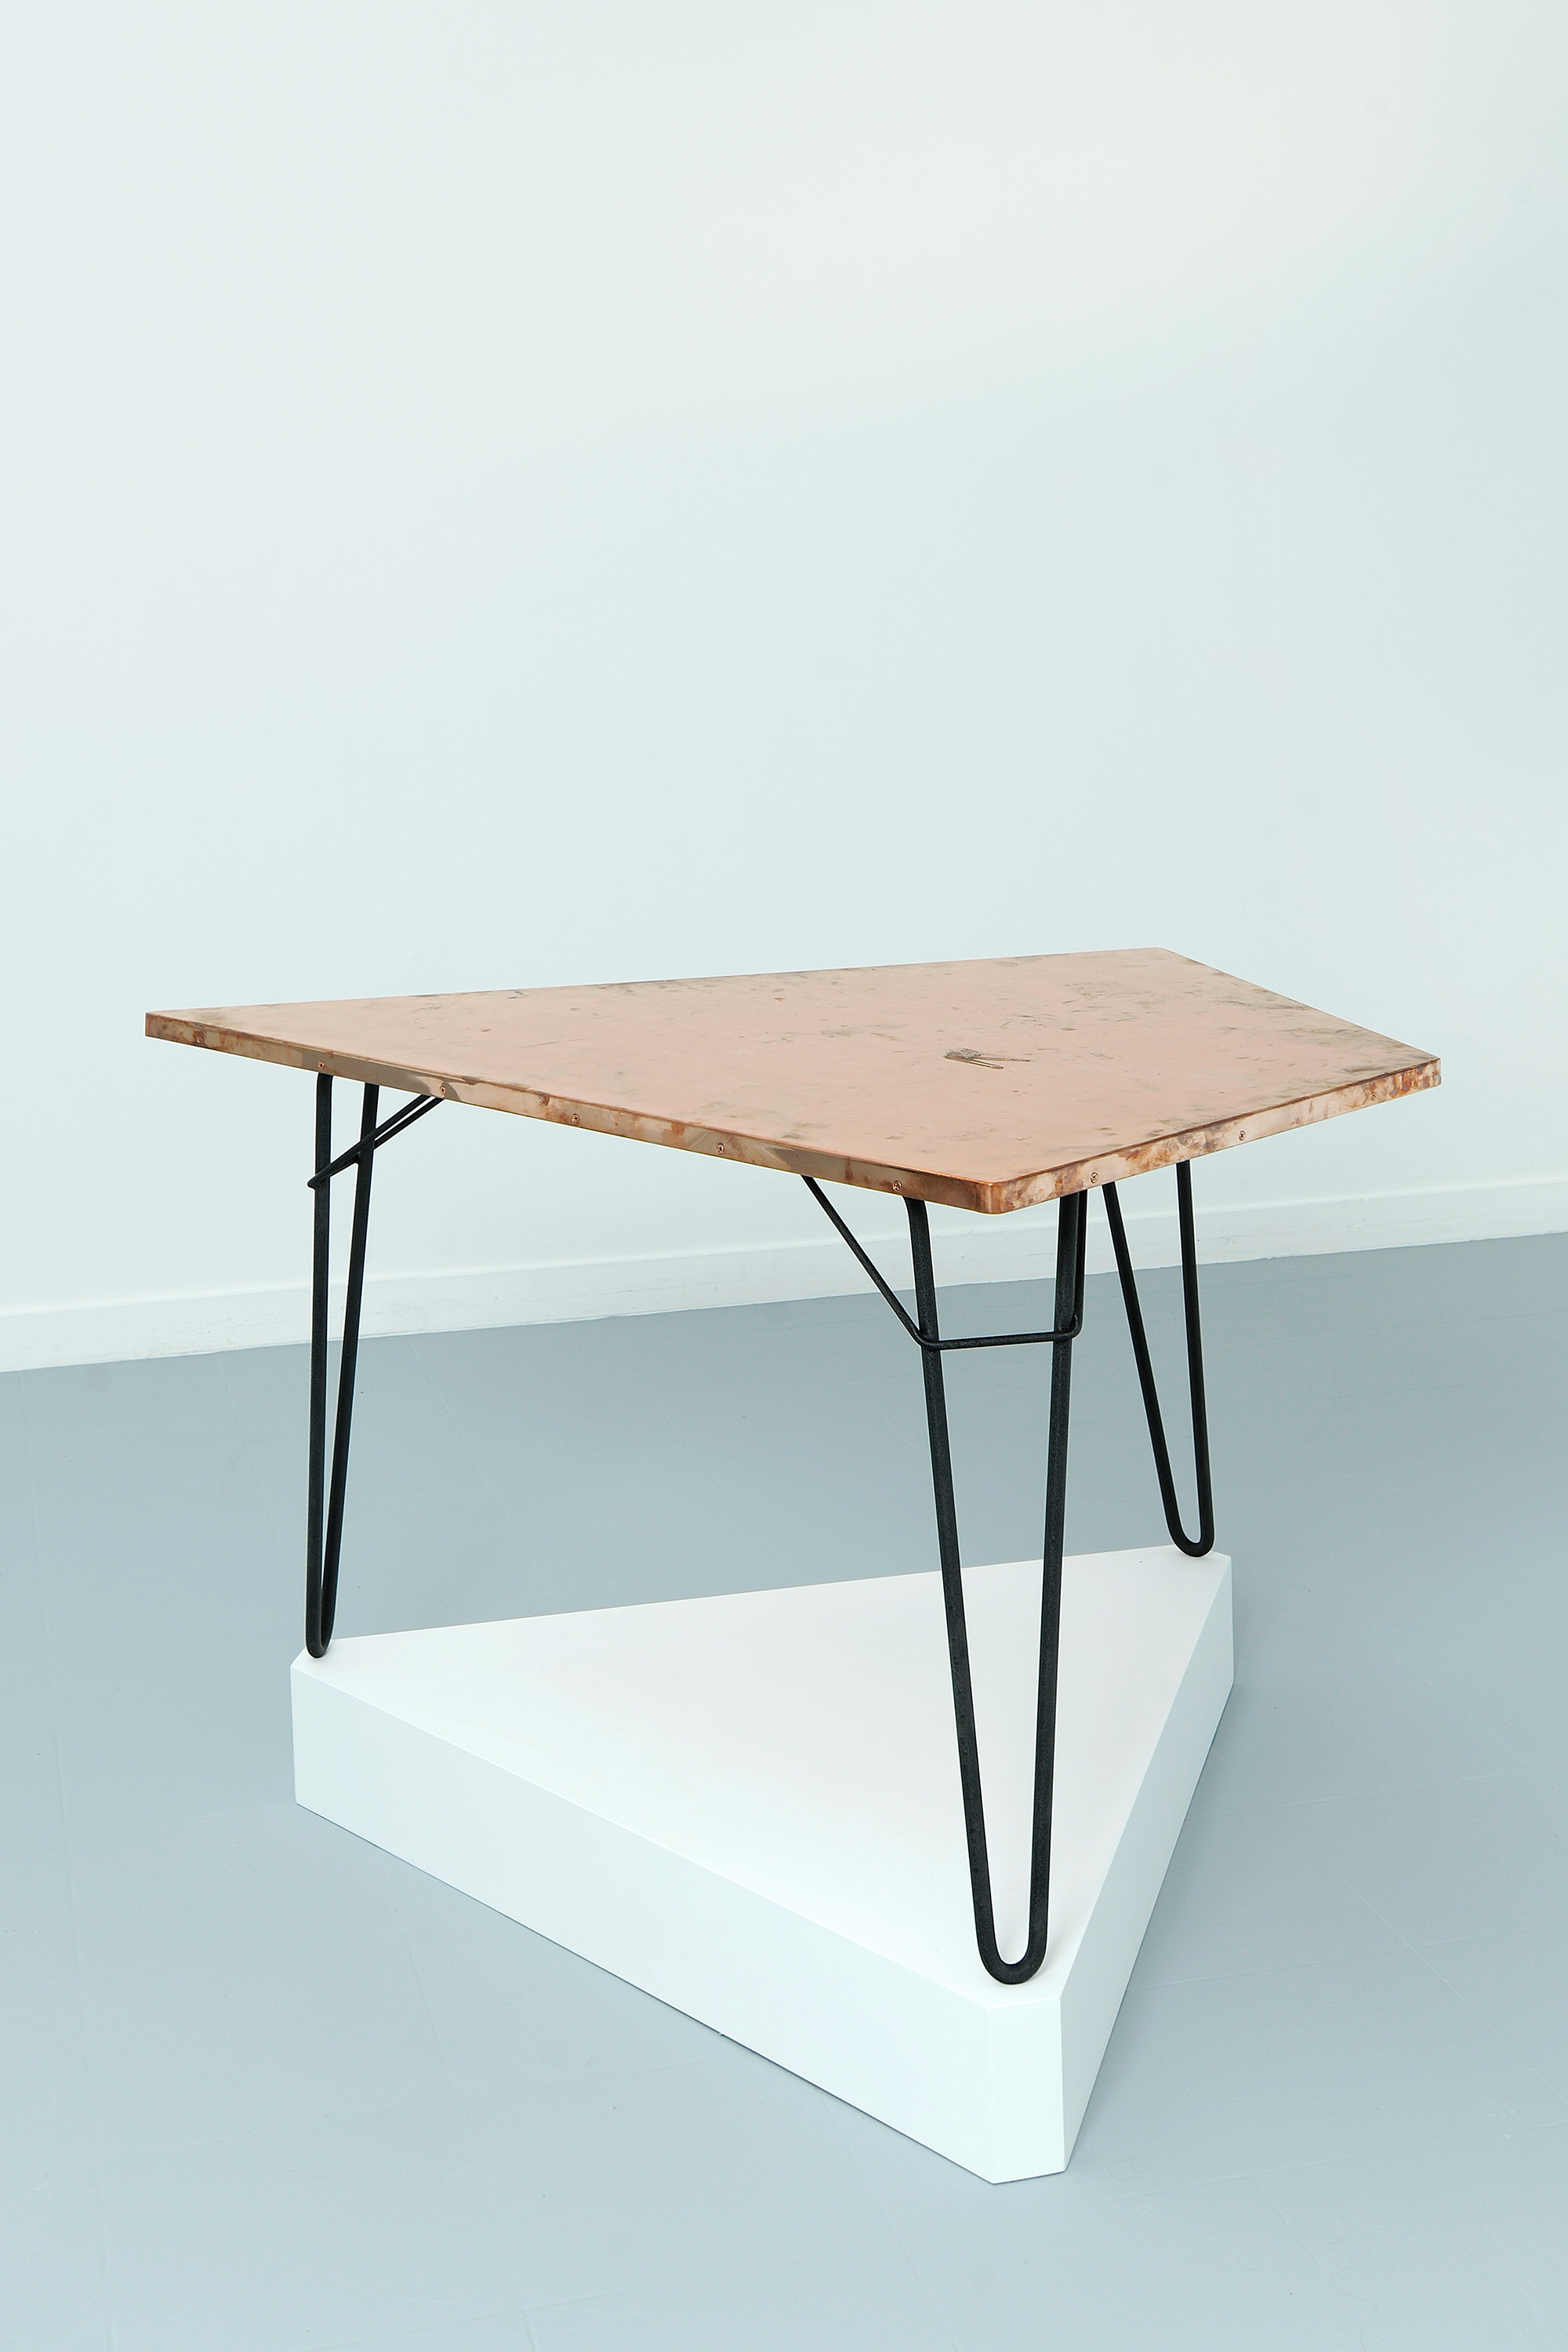 Copper Surrogate (Table: designed by Willy Van der Meeren, 1958; Galerie Rodolphe Janssen, Brussels, Belgium, August 10th–September 2nd, 2011)    2011   Polished copper table top and powder-coat steel  Table: 39 3/4 x 26 1/2 x 1 inches   Surrogates (Tabletop and Desktop), 2008–